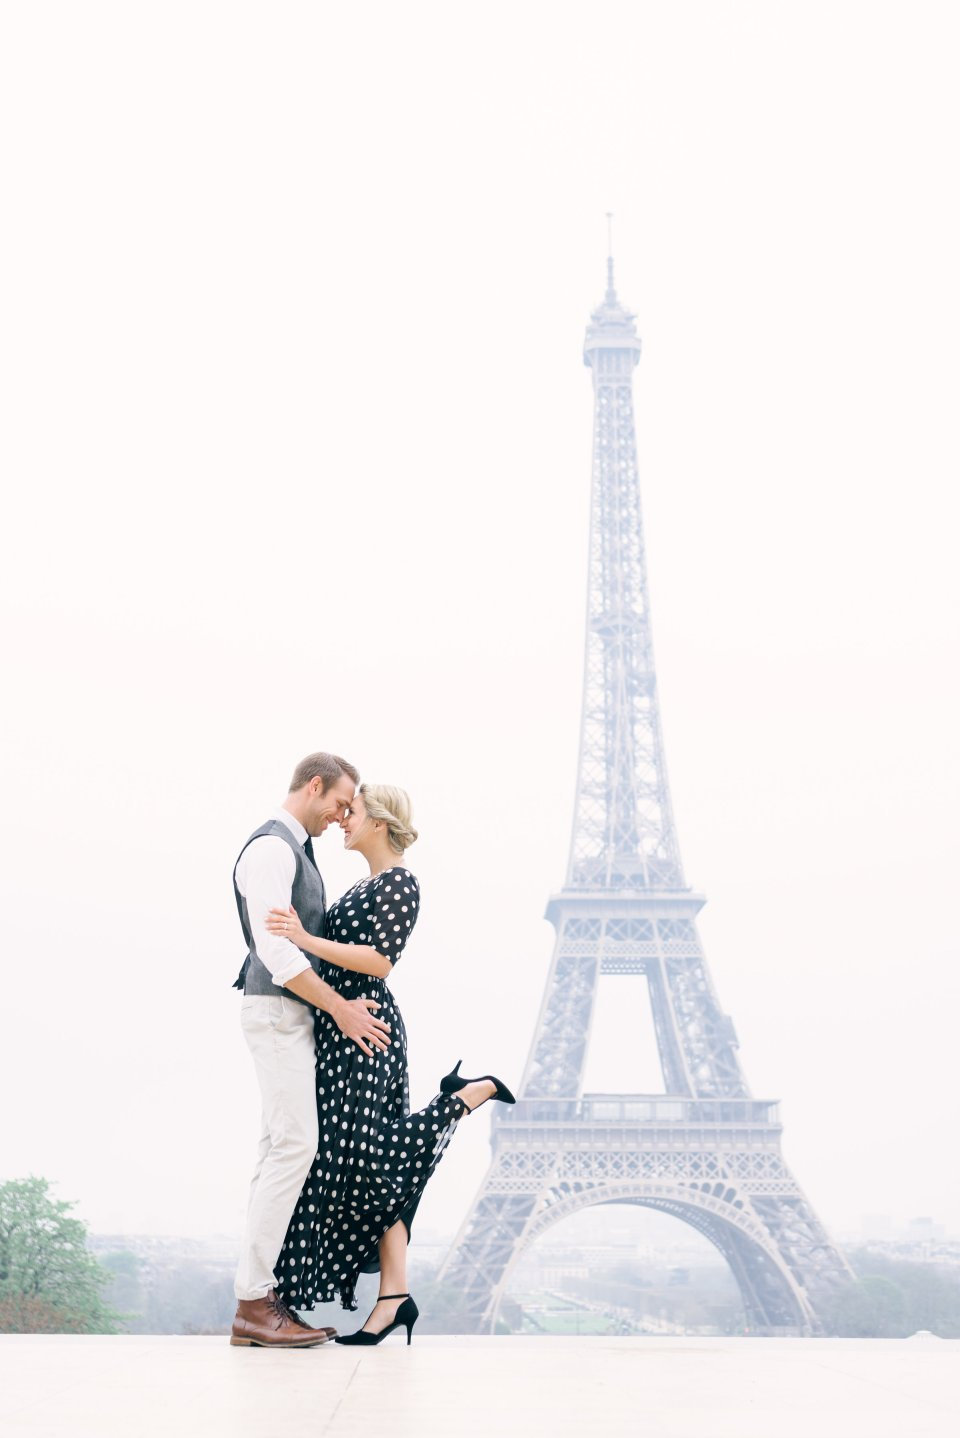 Brooke & Doug at the Eiffel Tower photo by Tim Moore Photography